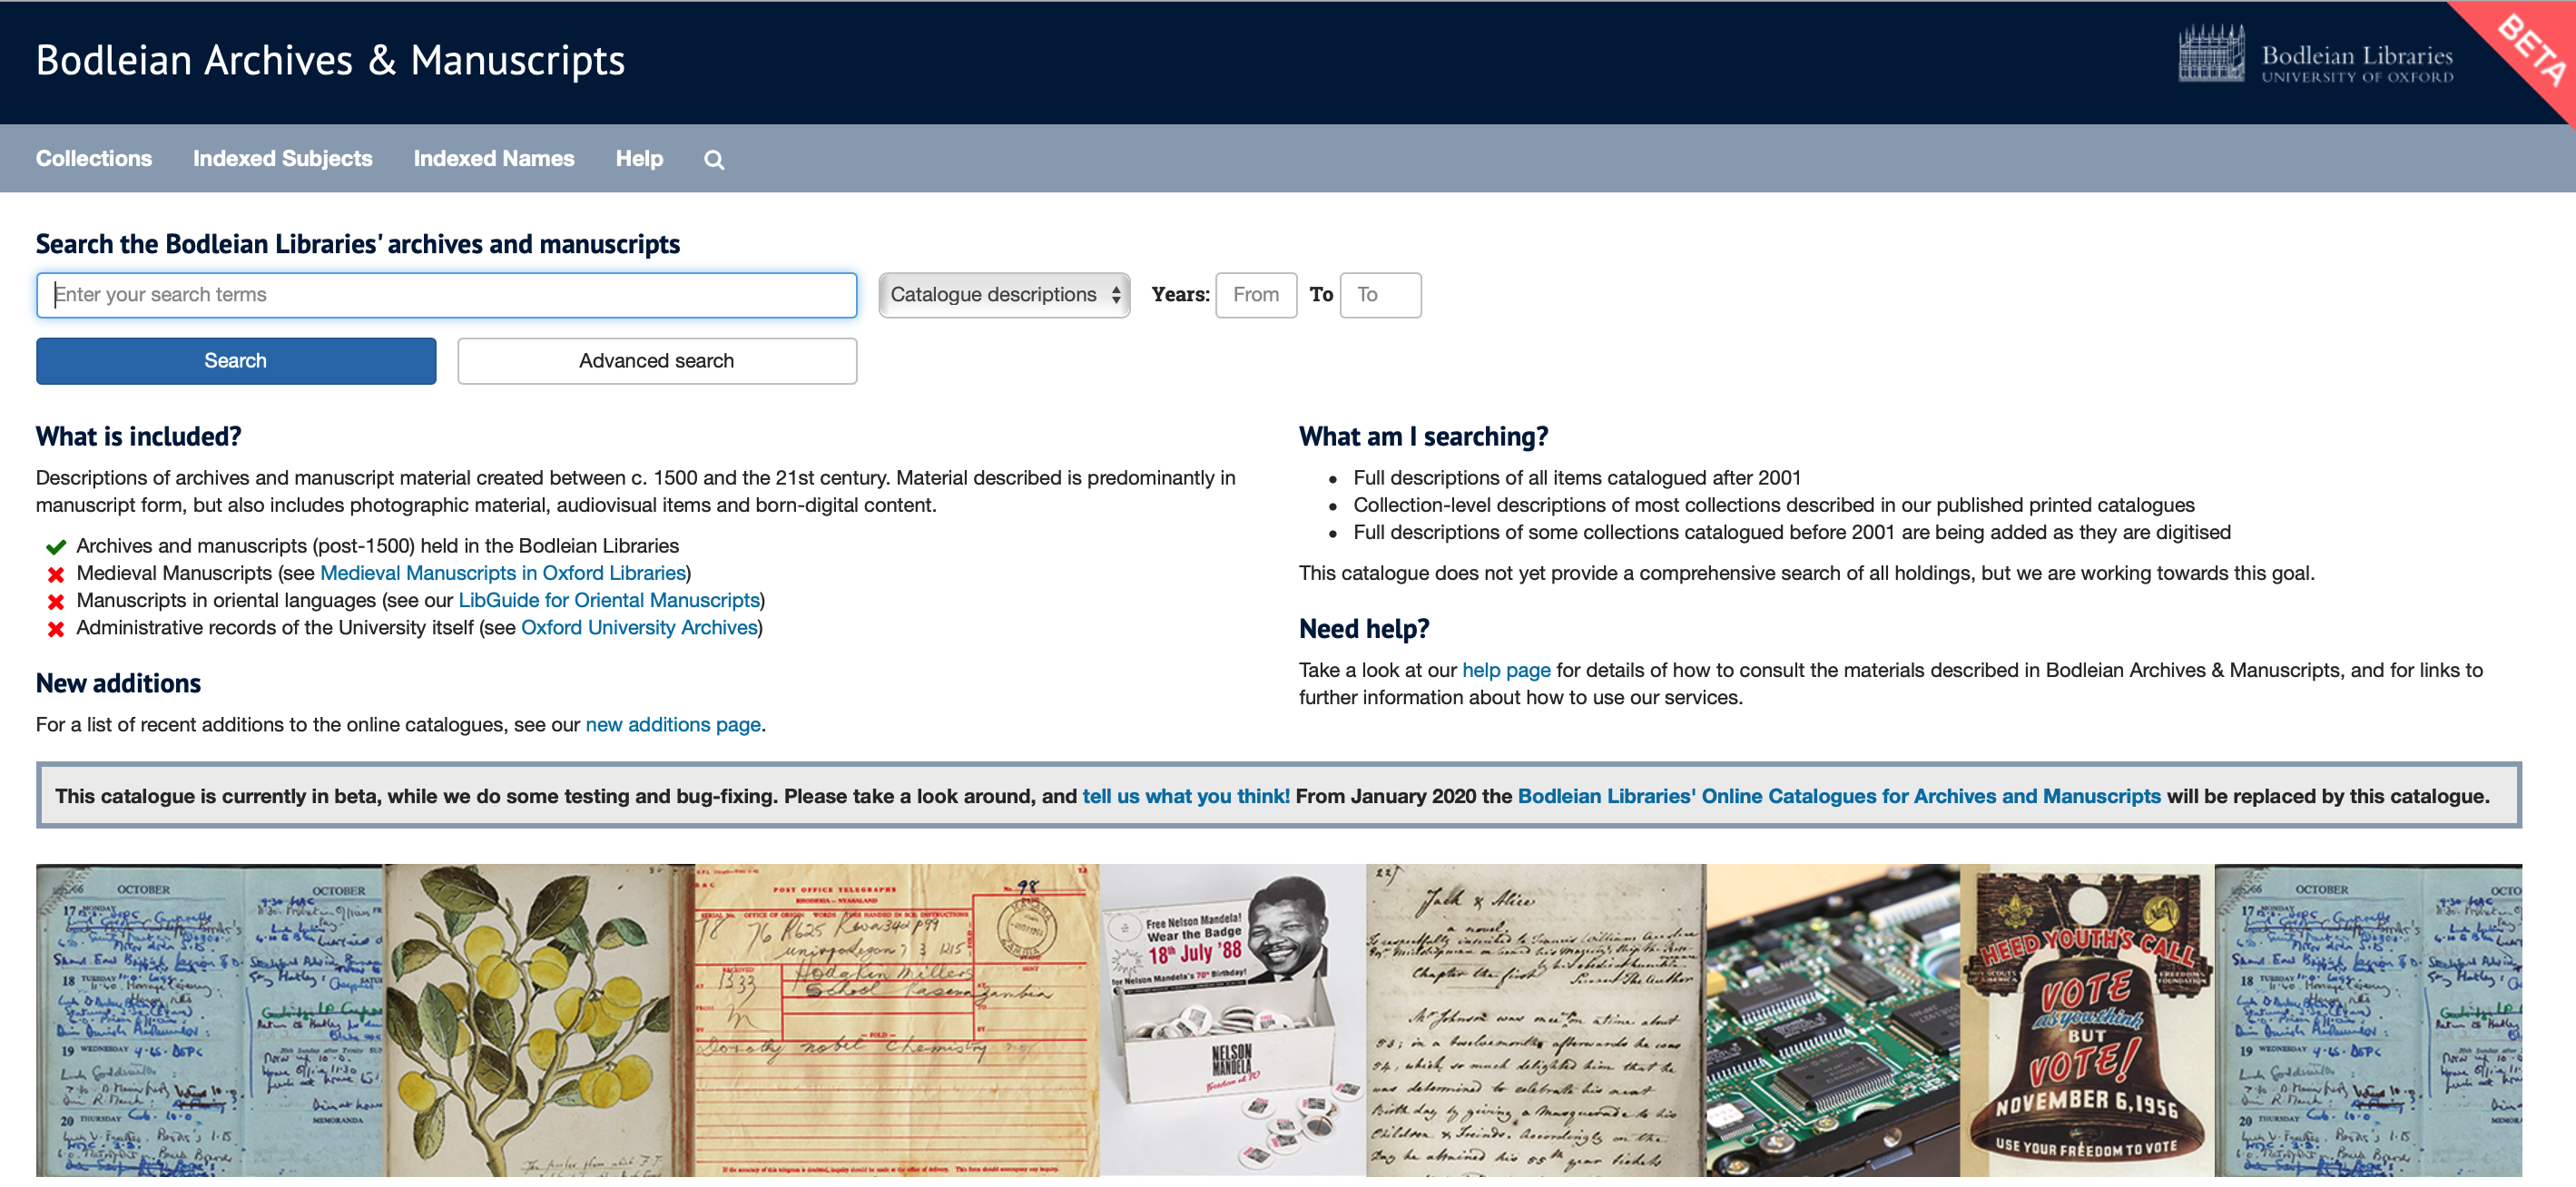 New discovery tool to search Bodleian Archives & Manuscripts